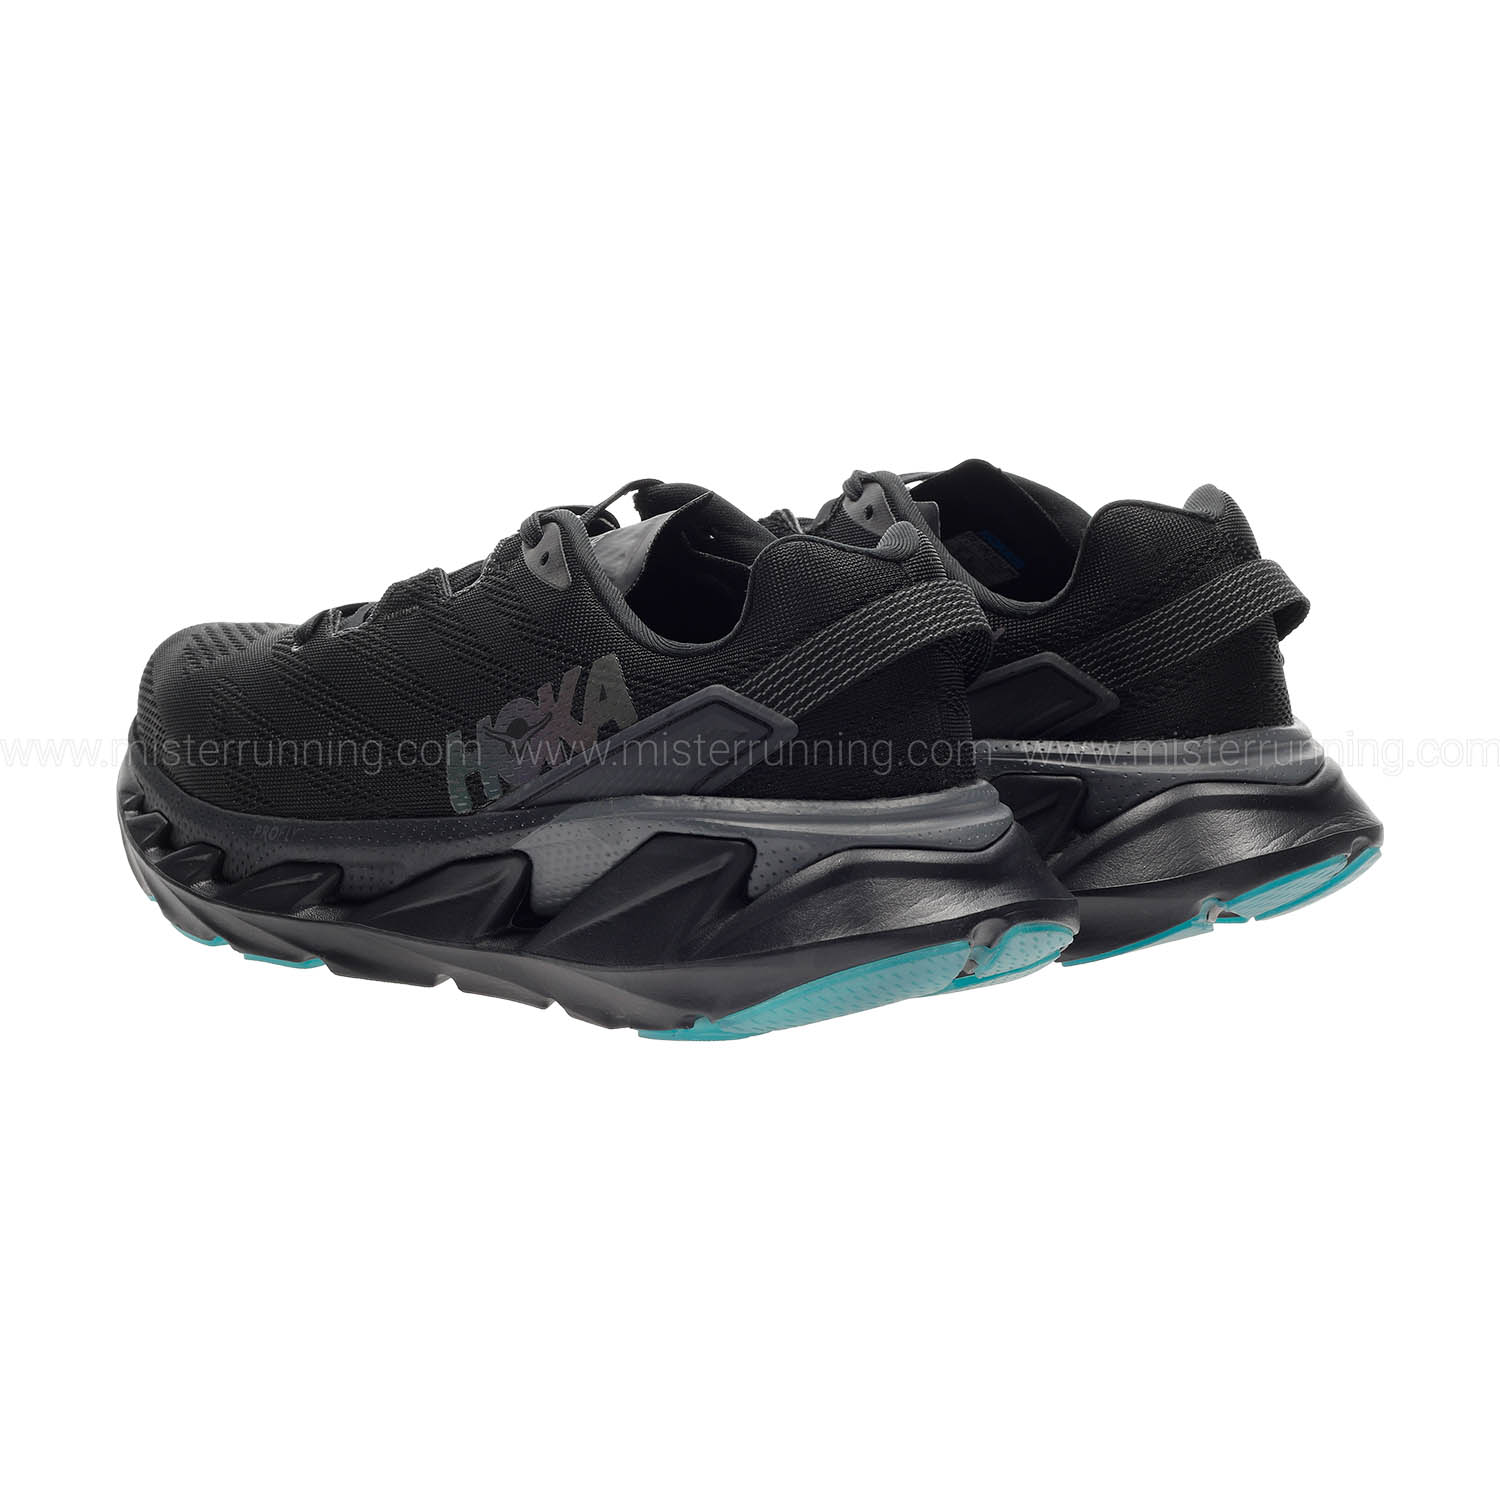 Hoka One One Elevon 2 - Black/Dark Shadow